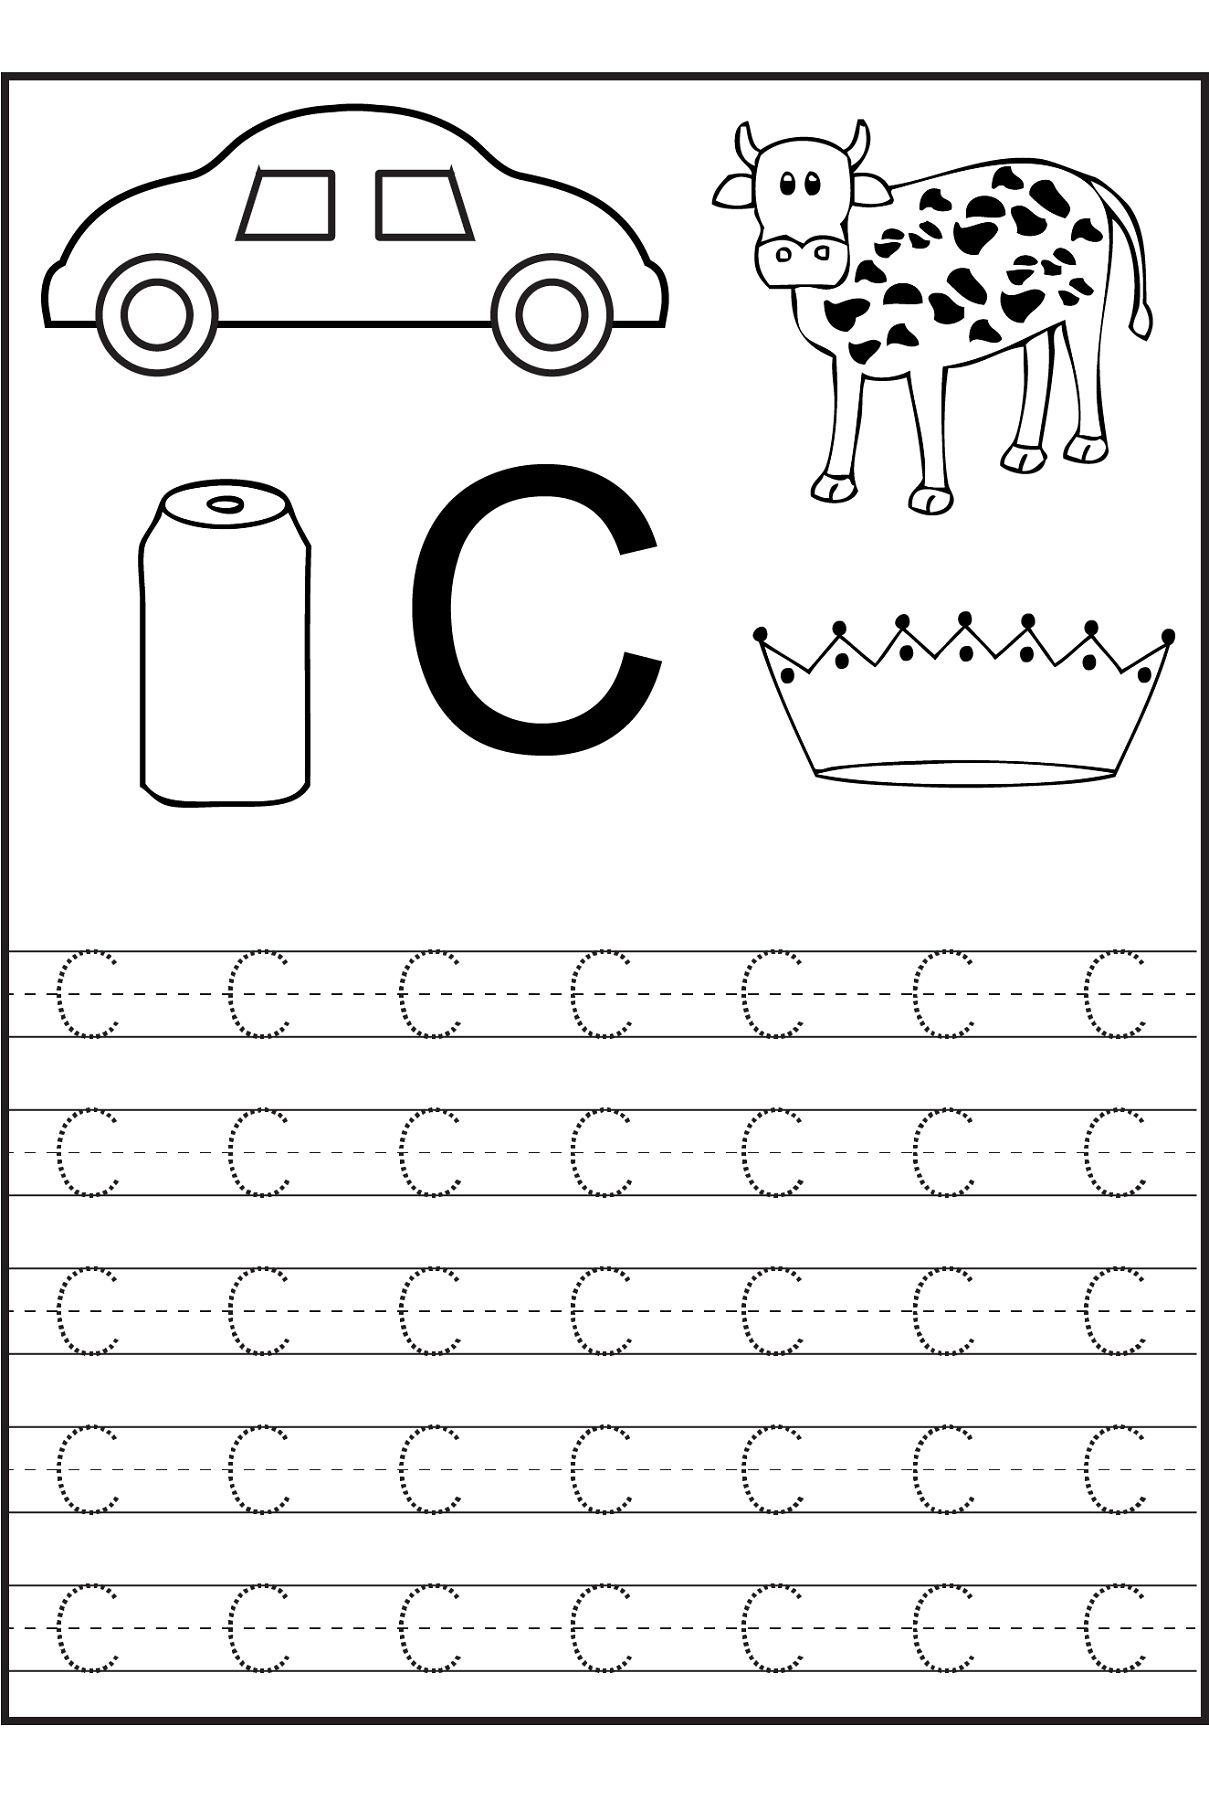 Letter C Worksheets For Toddlers - kids under 7 alphabet handwriting ...